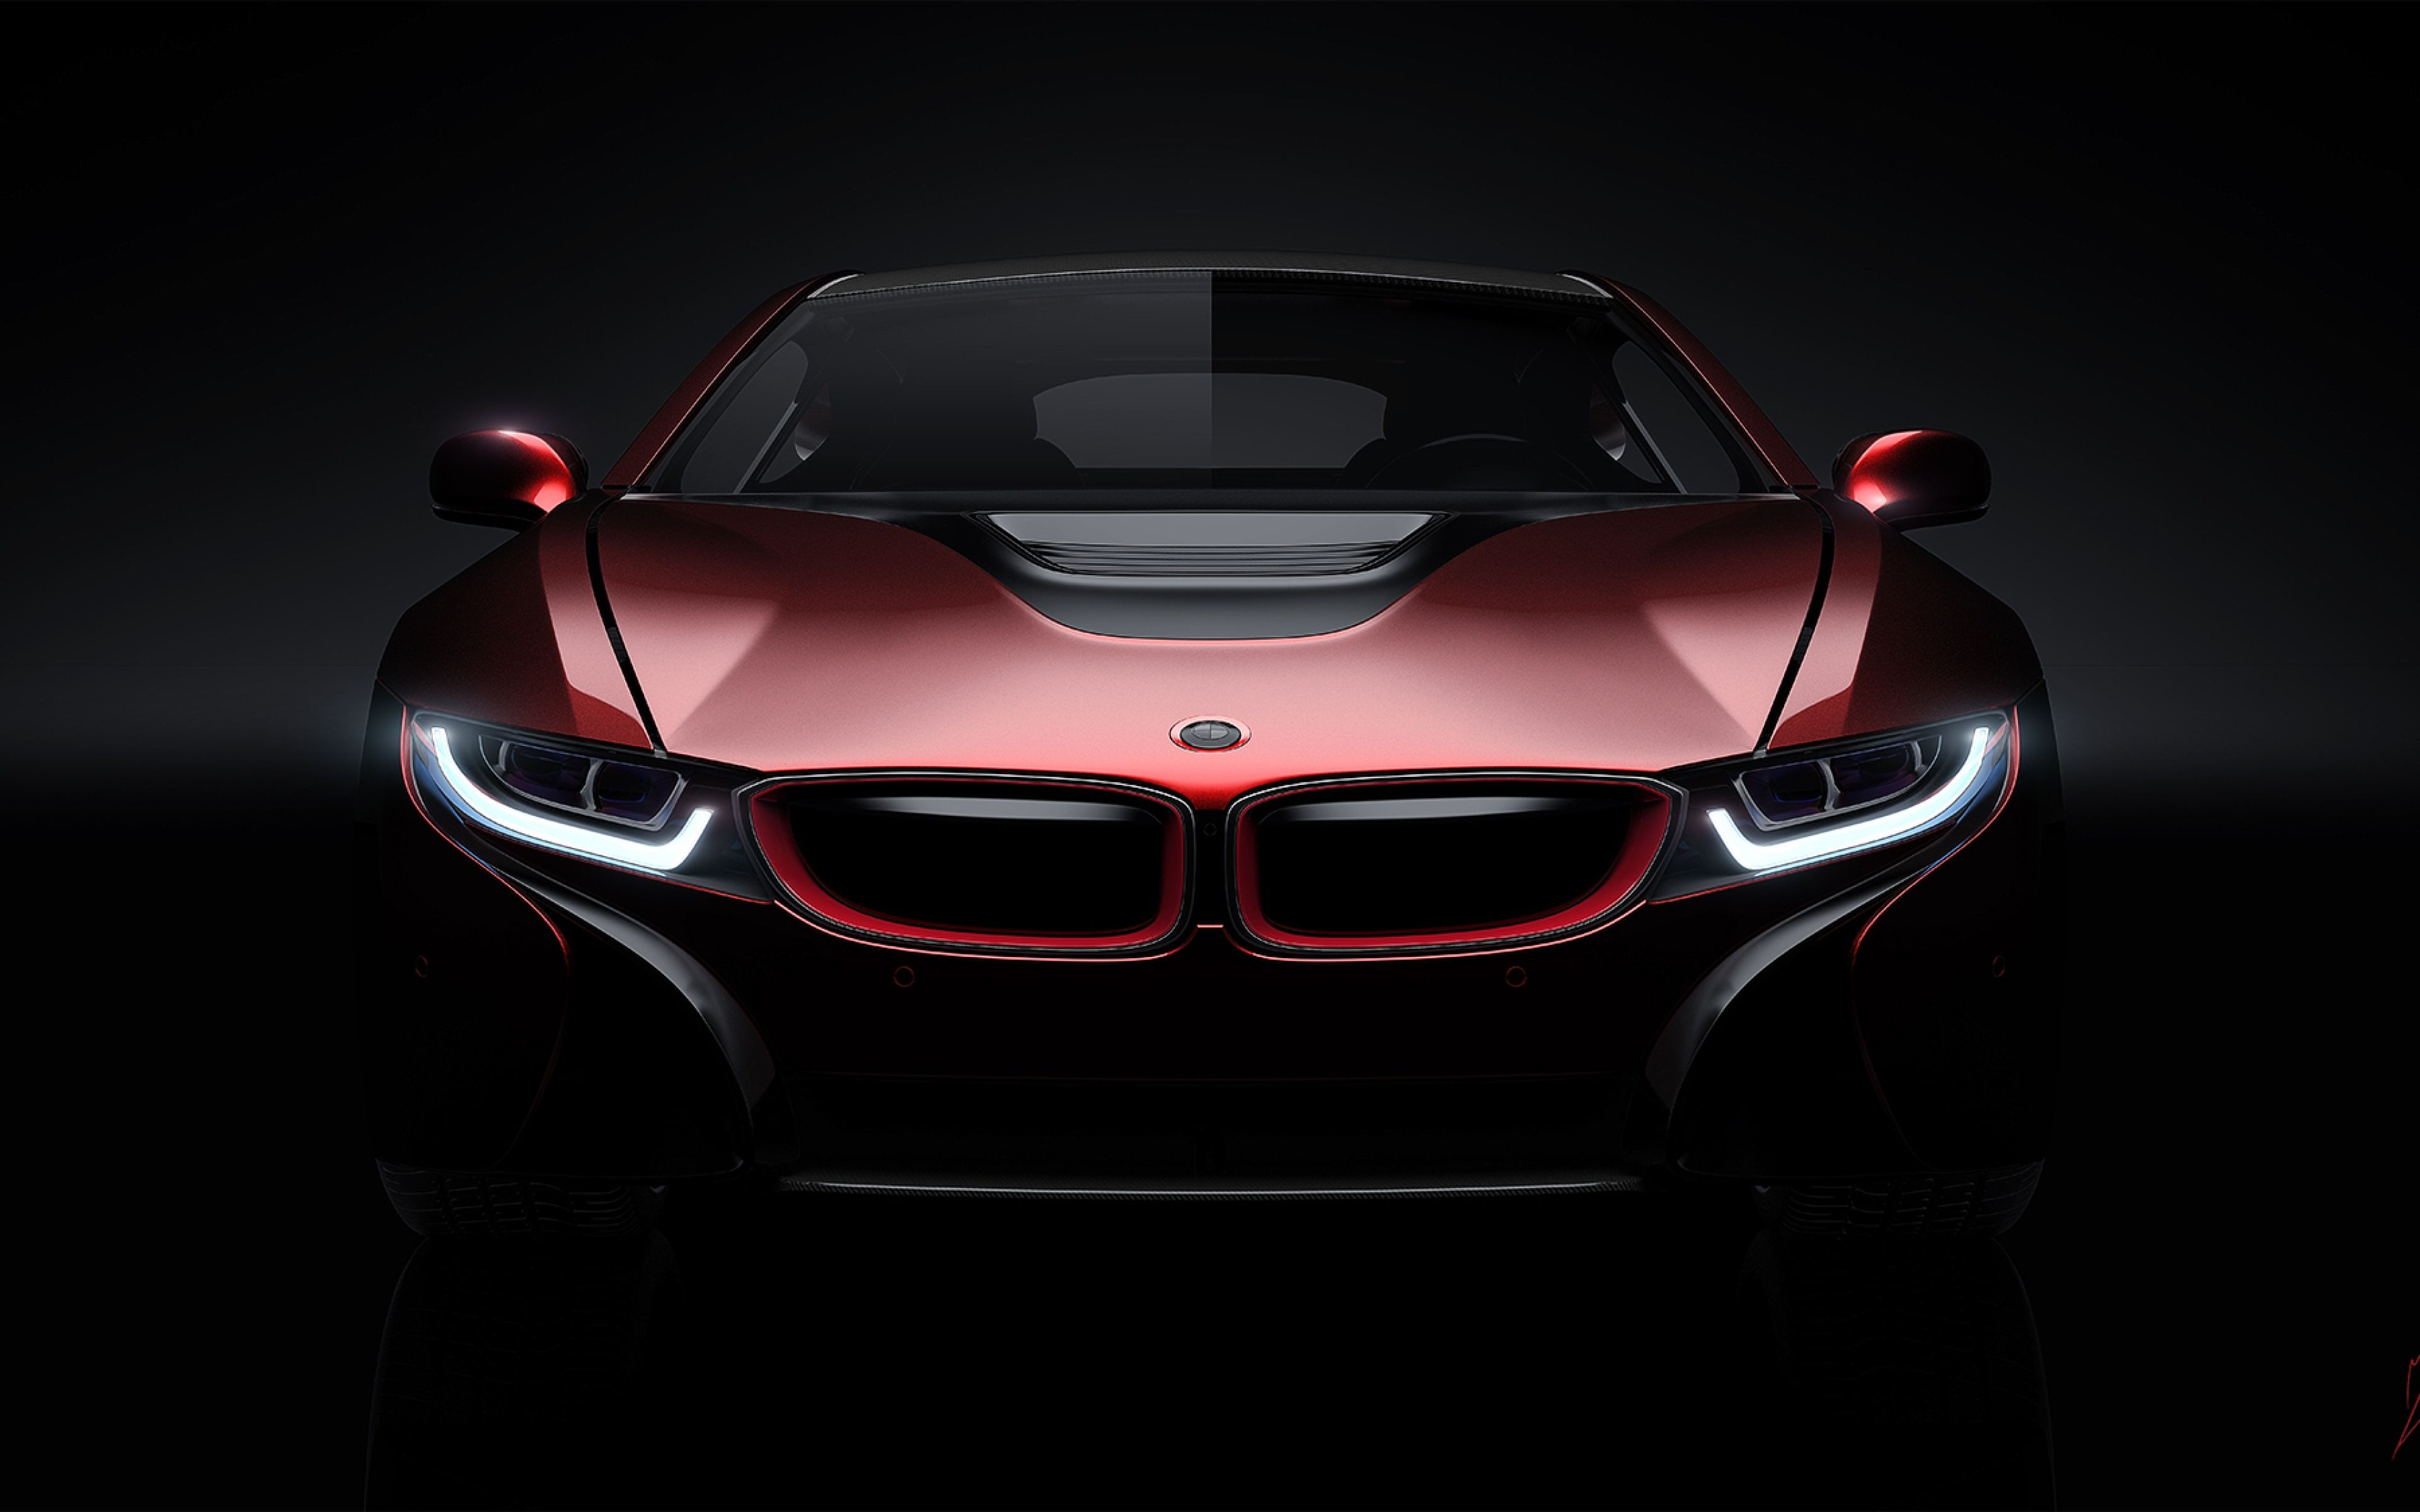 small resolution of bmw black i8 front download wallpaper 3840x2400 bmw i8 concept front view ultra hd 4k